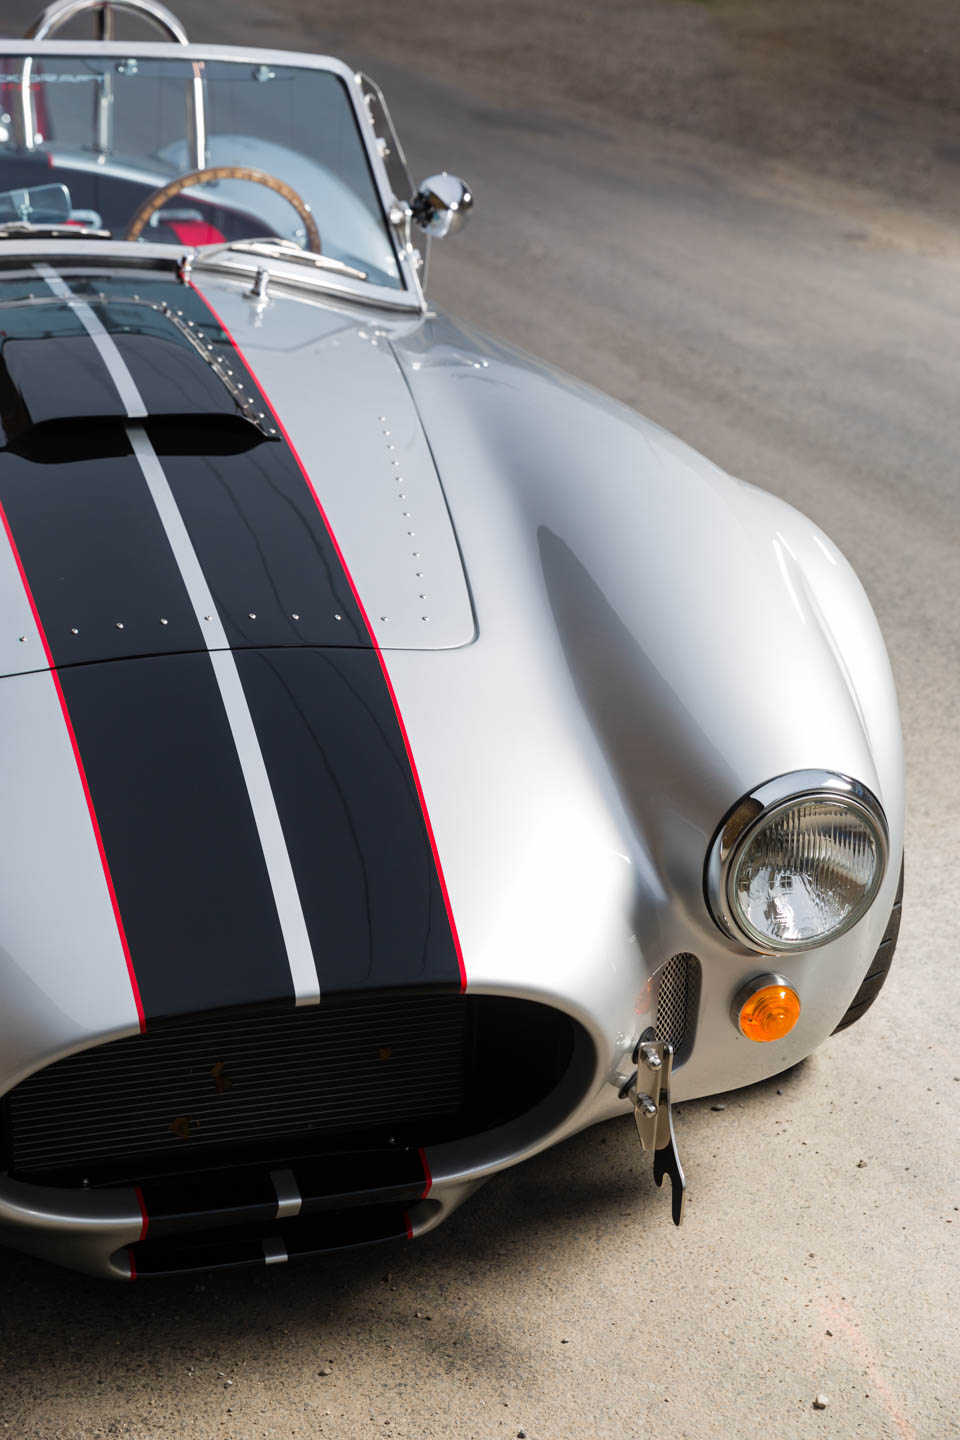 Photographing the curves of a silver Shelby Cobra